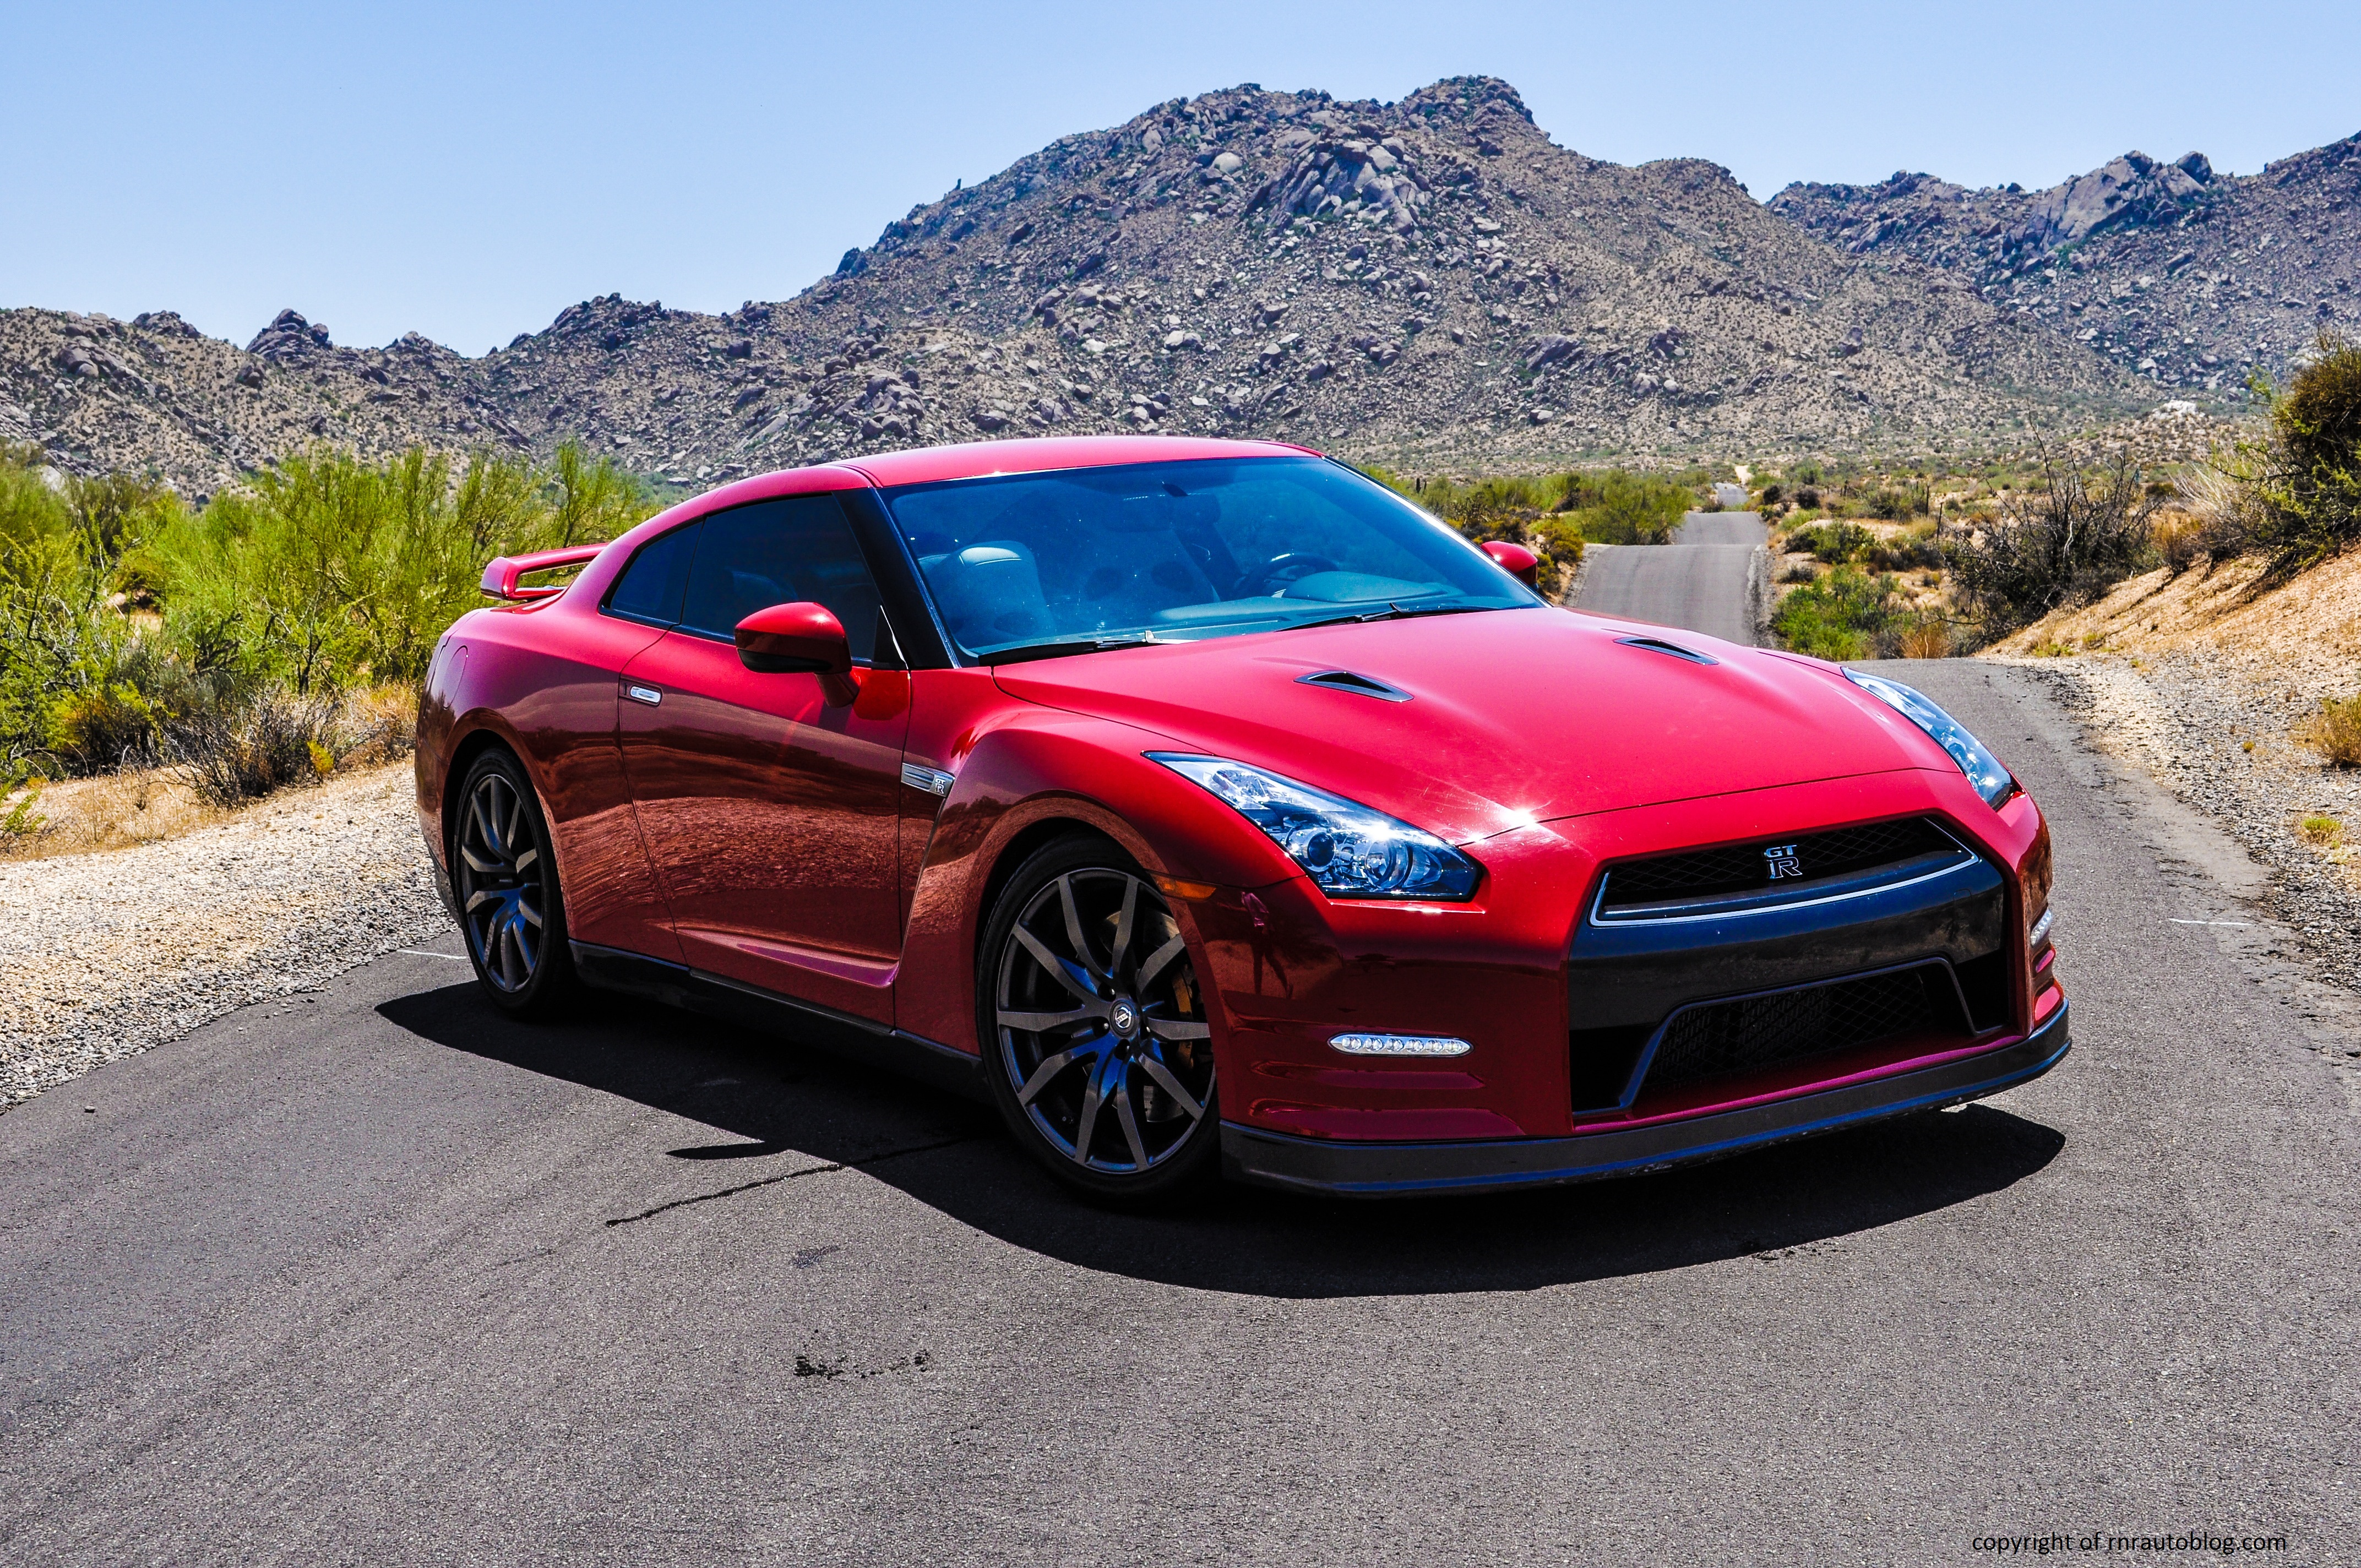 2012 nissan gt r review rnr automotive blog for 2012 the gt r received new mechanical and visual updates the twin turbo 38 liter v6s horsepower jumped from 485 to 530 horsepower in 2012 nissan vanachro Gallery